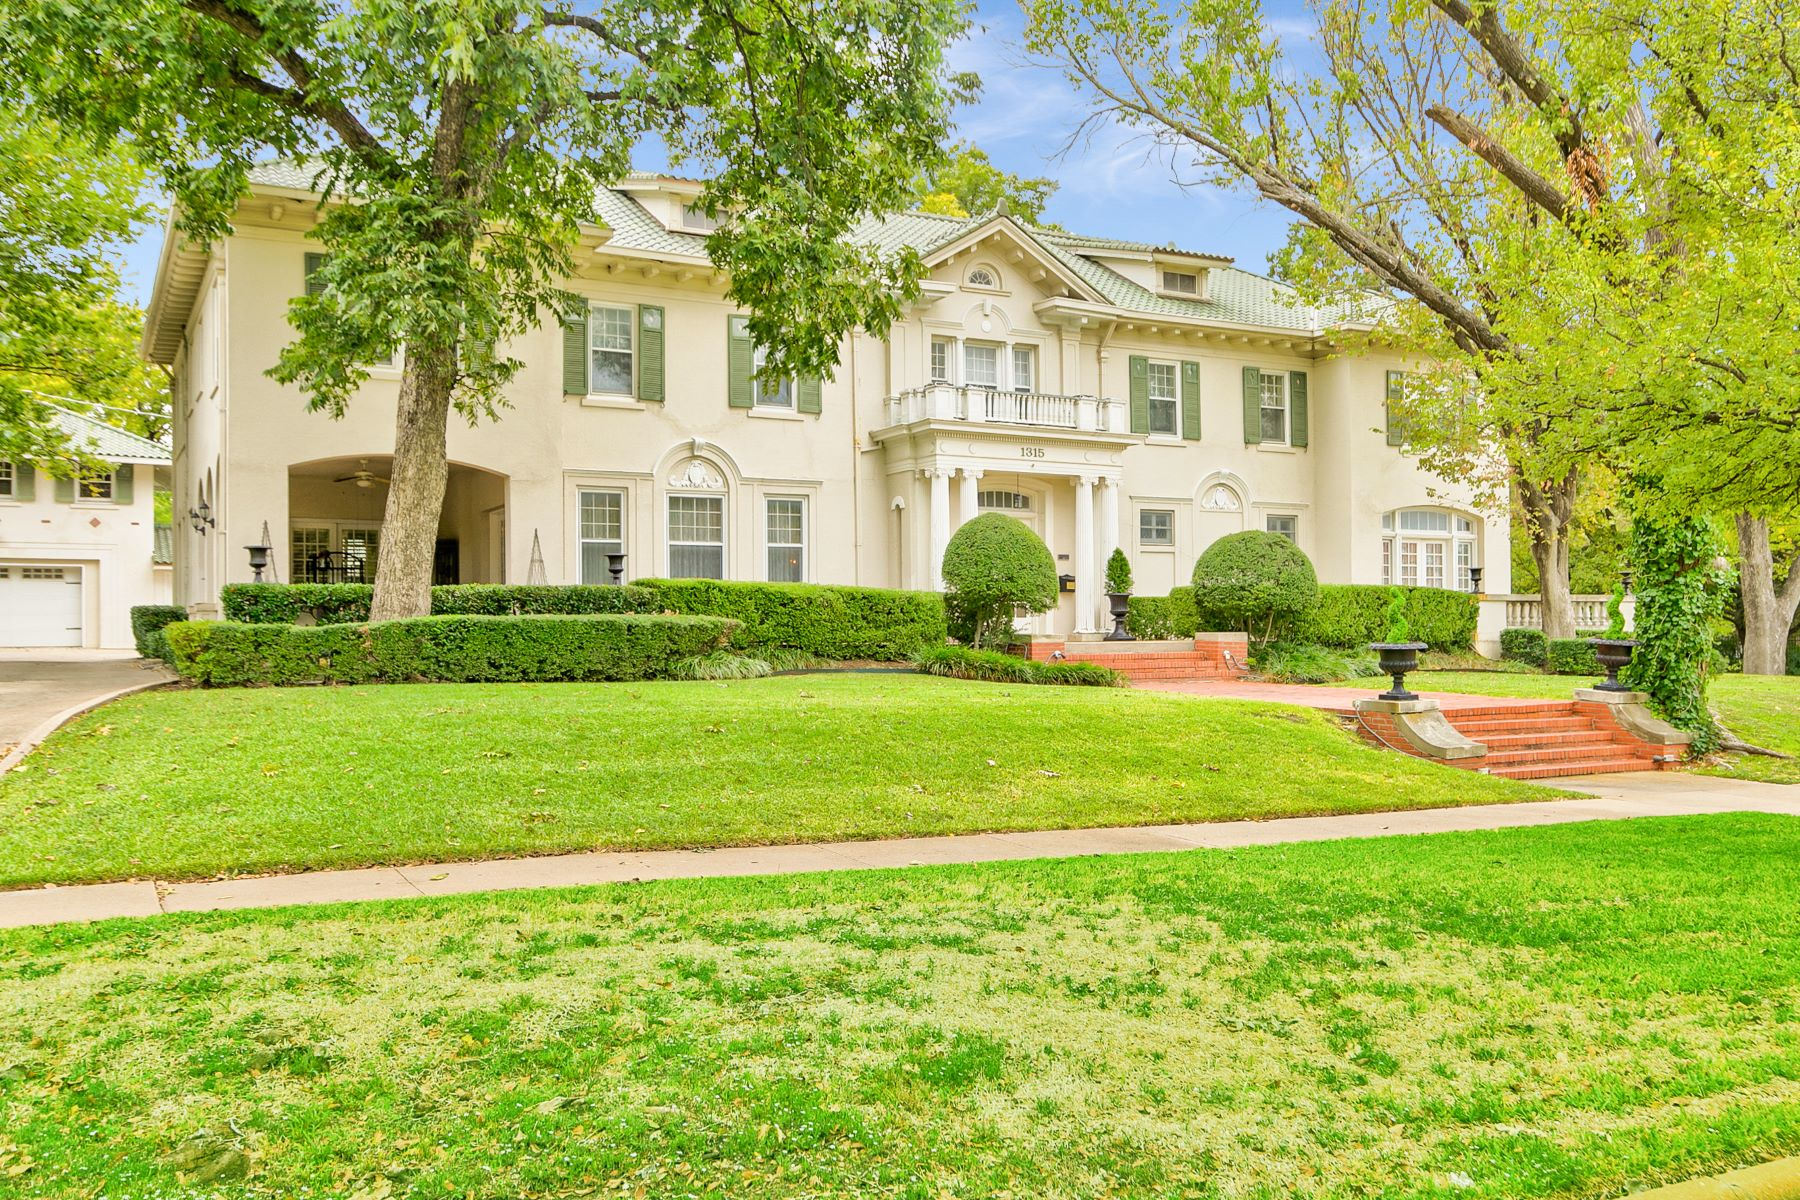 Single Family Homes for Sale at Iconic 1918 Historic District Mansion in Fort Worth 1315 Elizabeth Boulevard Fort Worth, Texas 76110 United States